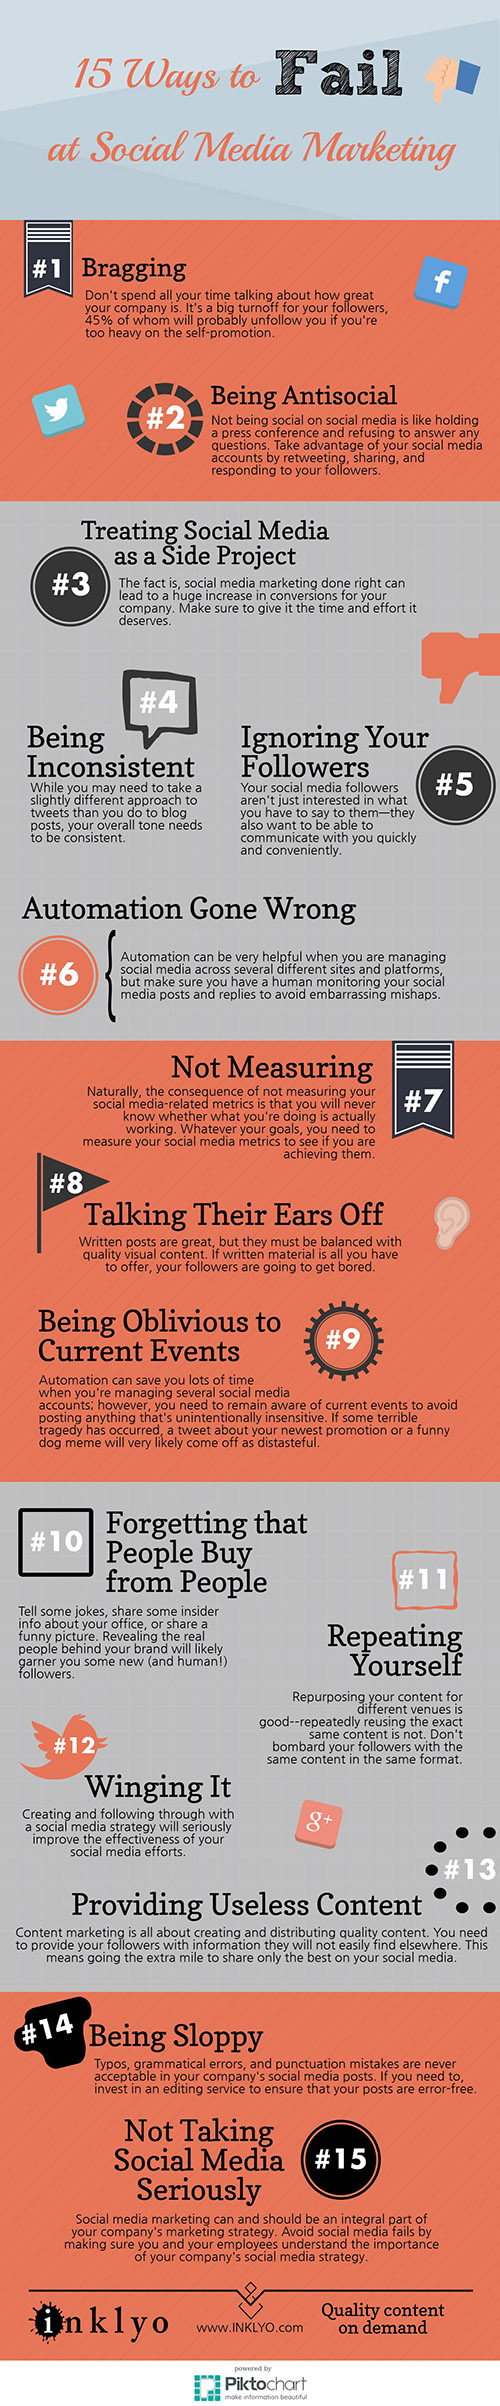 Infographic: 15 Mistakes That Could Tank Your Social Media Strategy